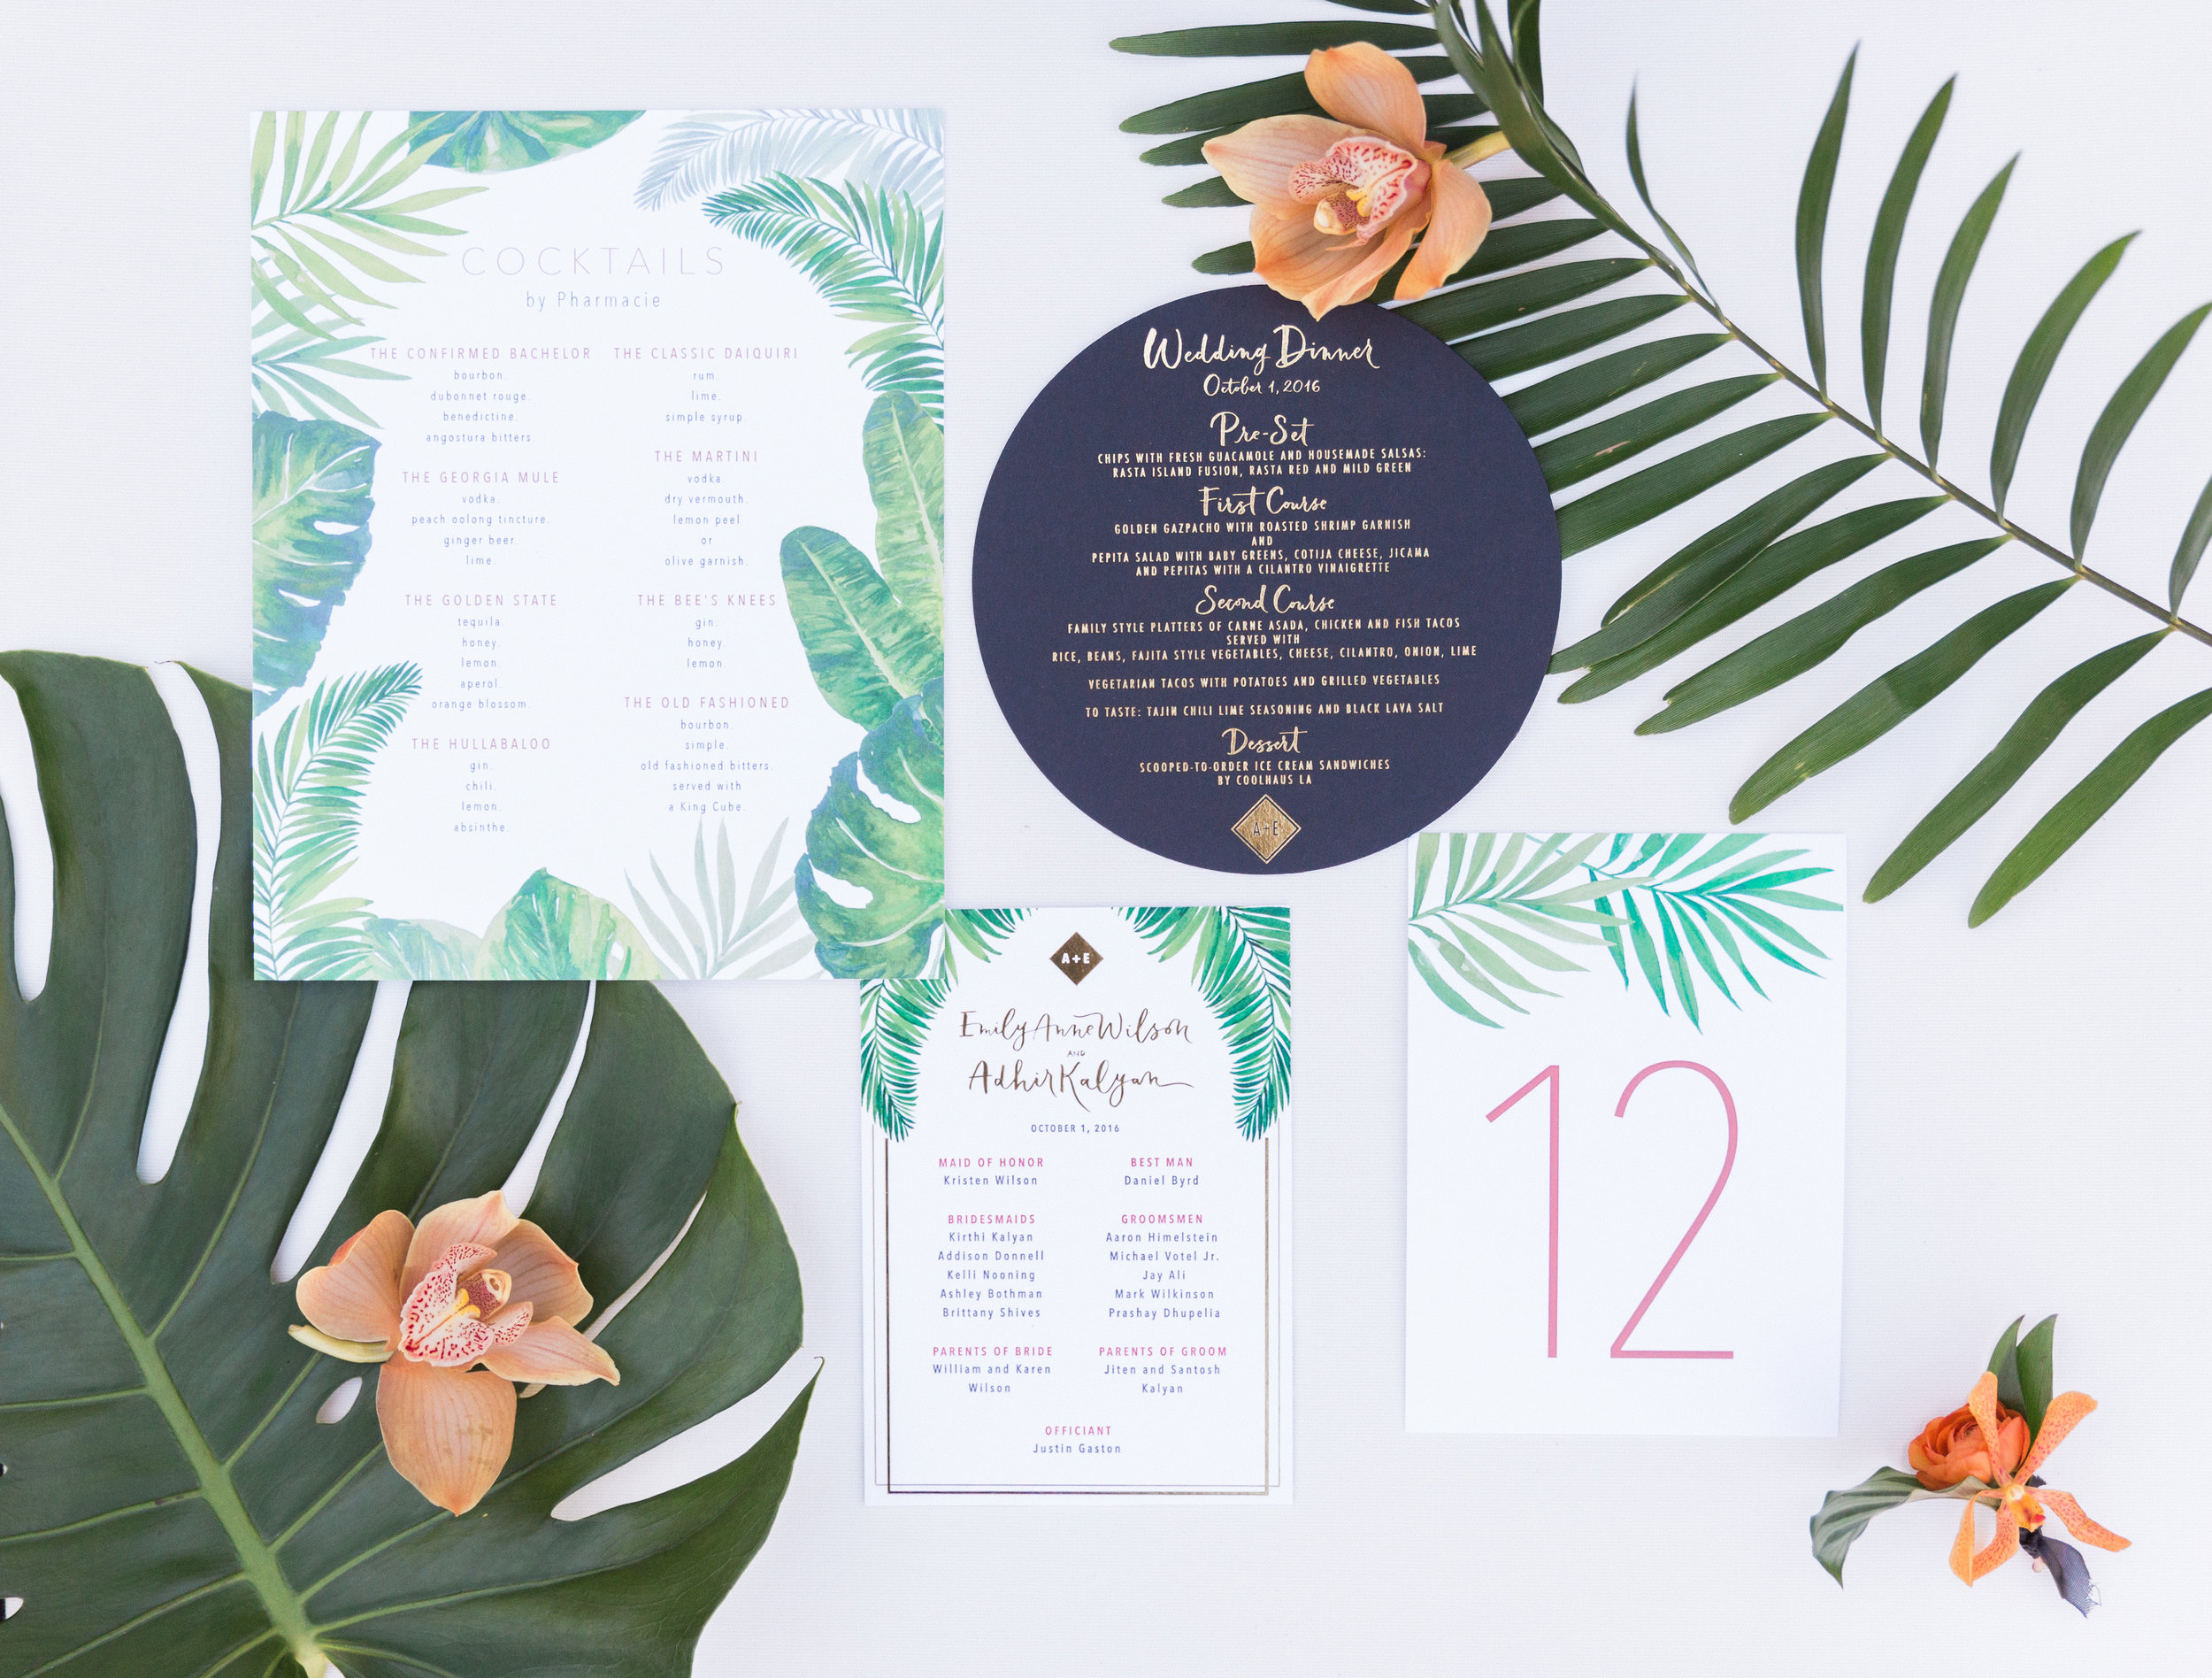 """LOS ANGELES CALLIGRAPHER"" ""WEDDING CALLIGRAPHER"" WEDDING DETAILS"" ""BETTY LING CALLIGRAPHY"" ""MODERN CALLIGRAPHY"" ""WEDDING INVITATIONS"" WEDDING PAPER"